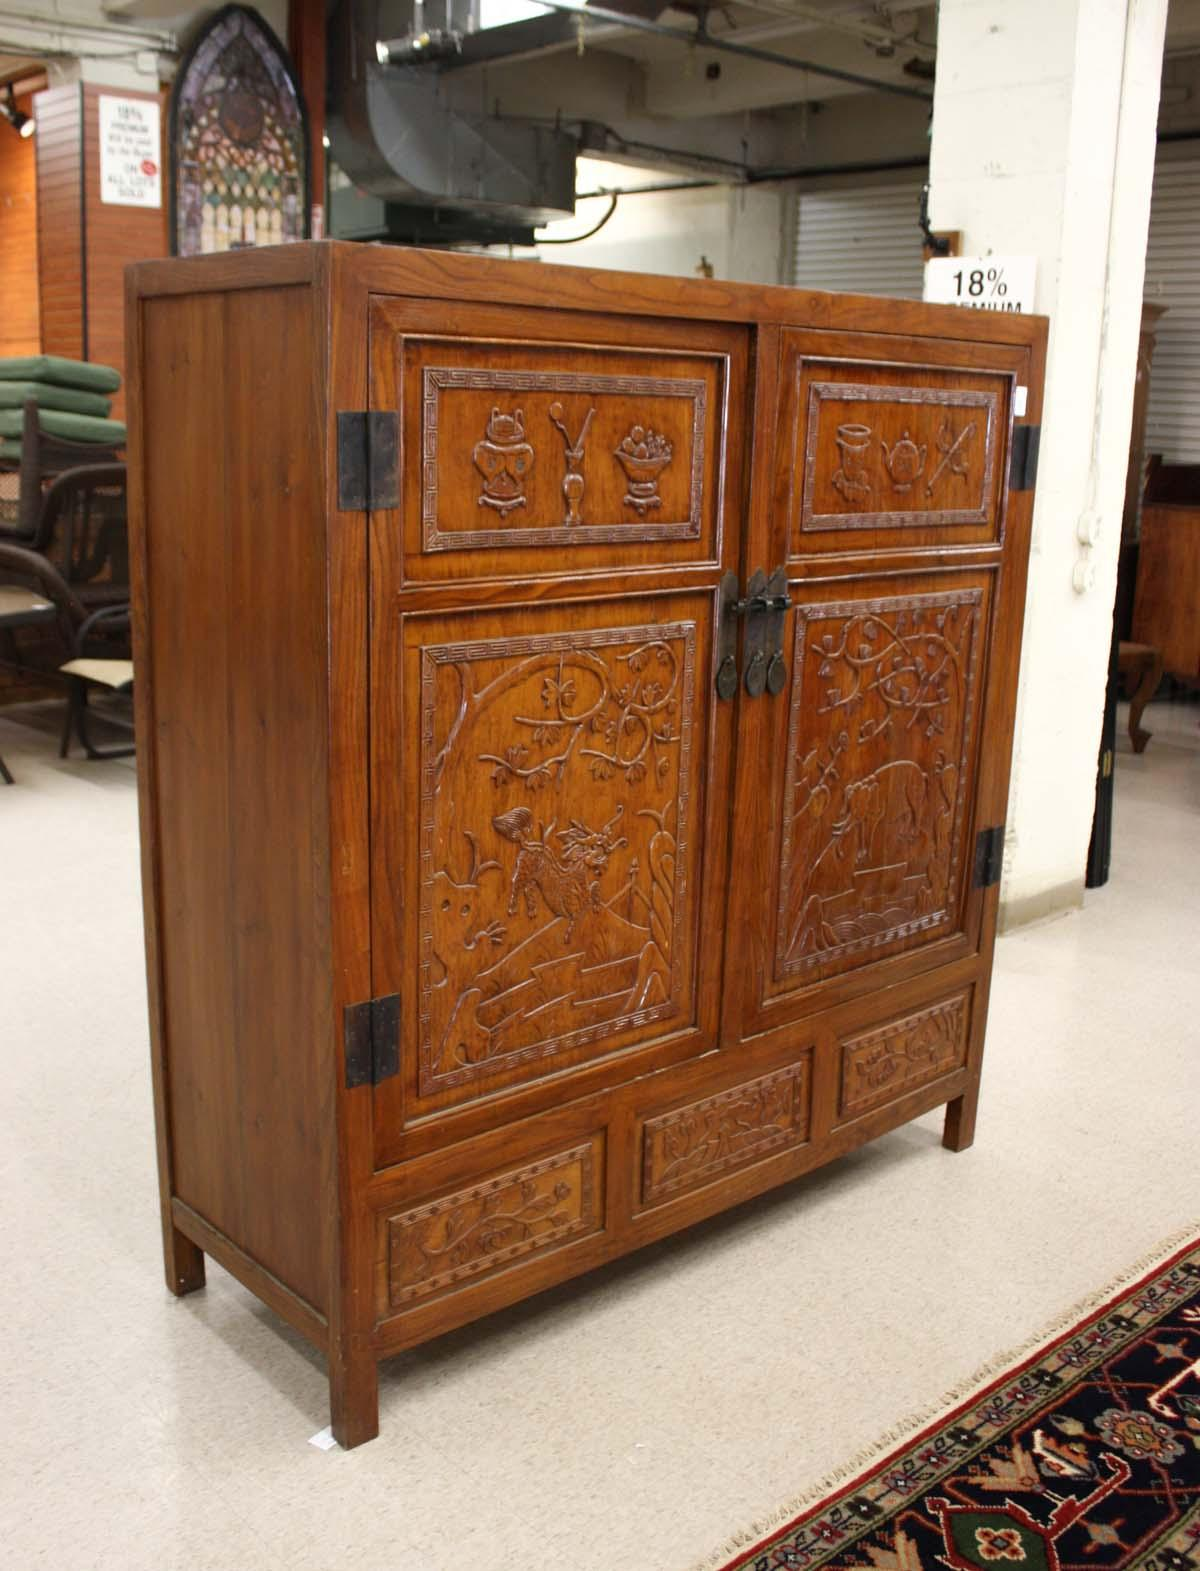 LARGE CARVED MING STYLE DOUBLE-DOOR CABINET, Chine